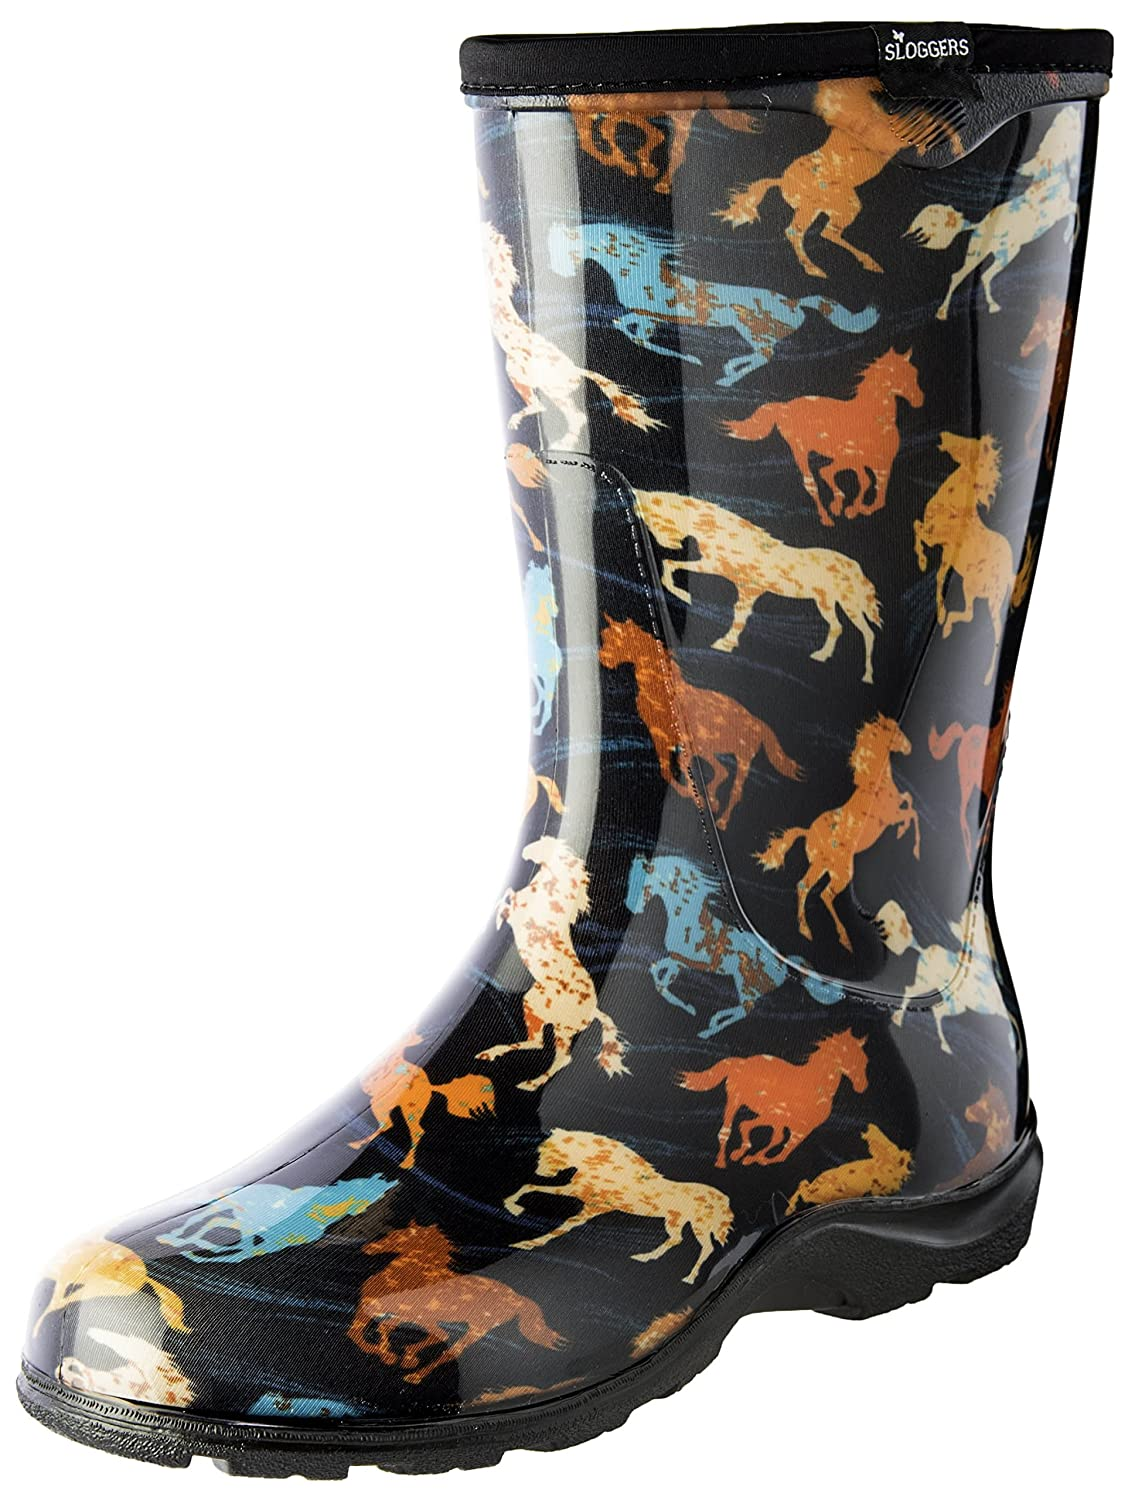 Sloggers Women's Waterproof Rain and Garden Boot with Comfort Insole, 8, Horse Spirit Black, Size 8, Insole, Style 5018HSBK08 B072T3KW3G 8|Horse Spirit Black 439d4f